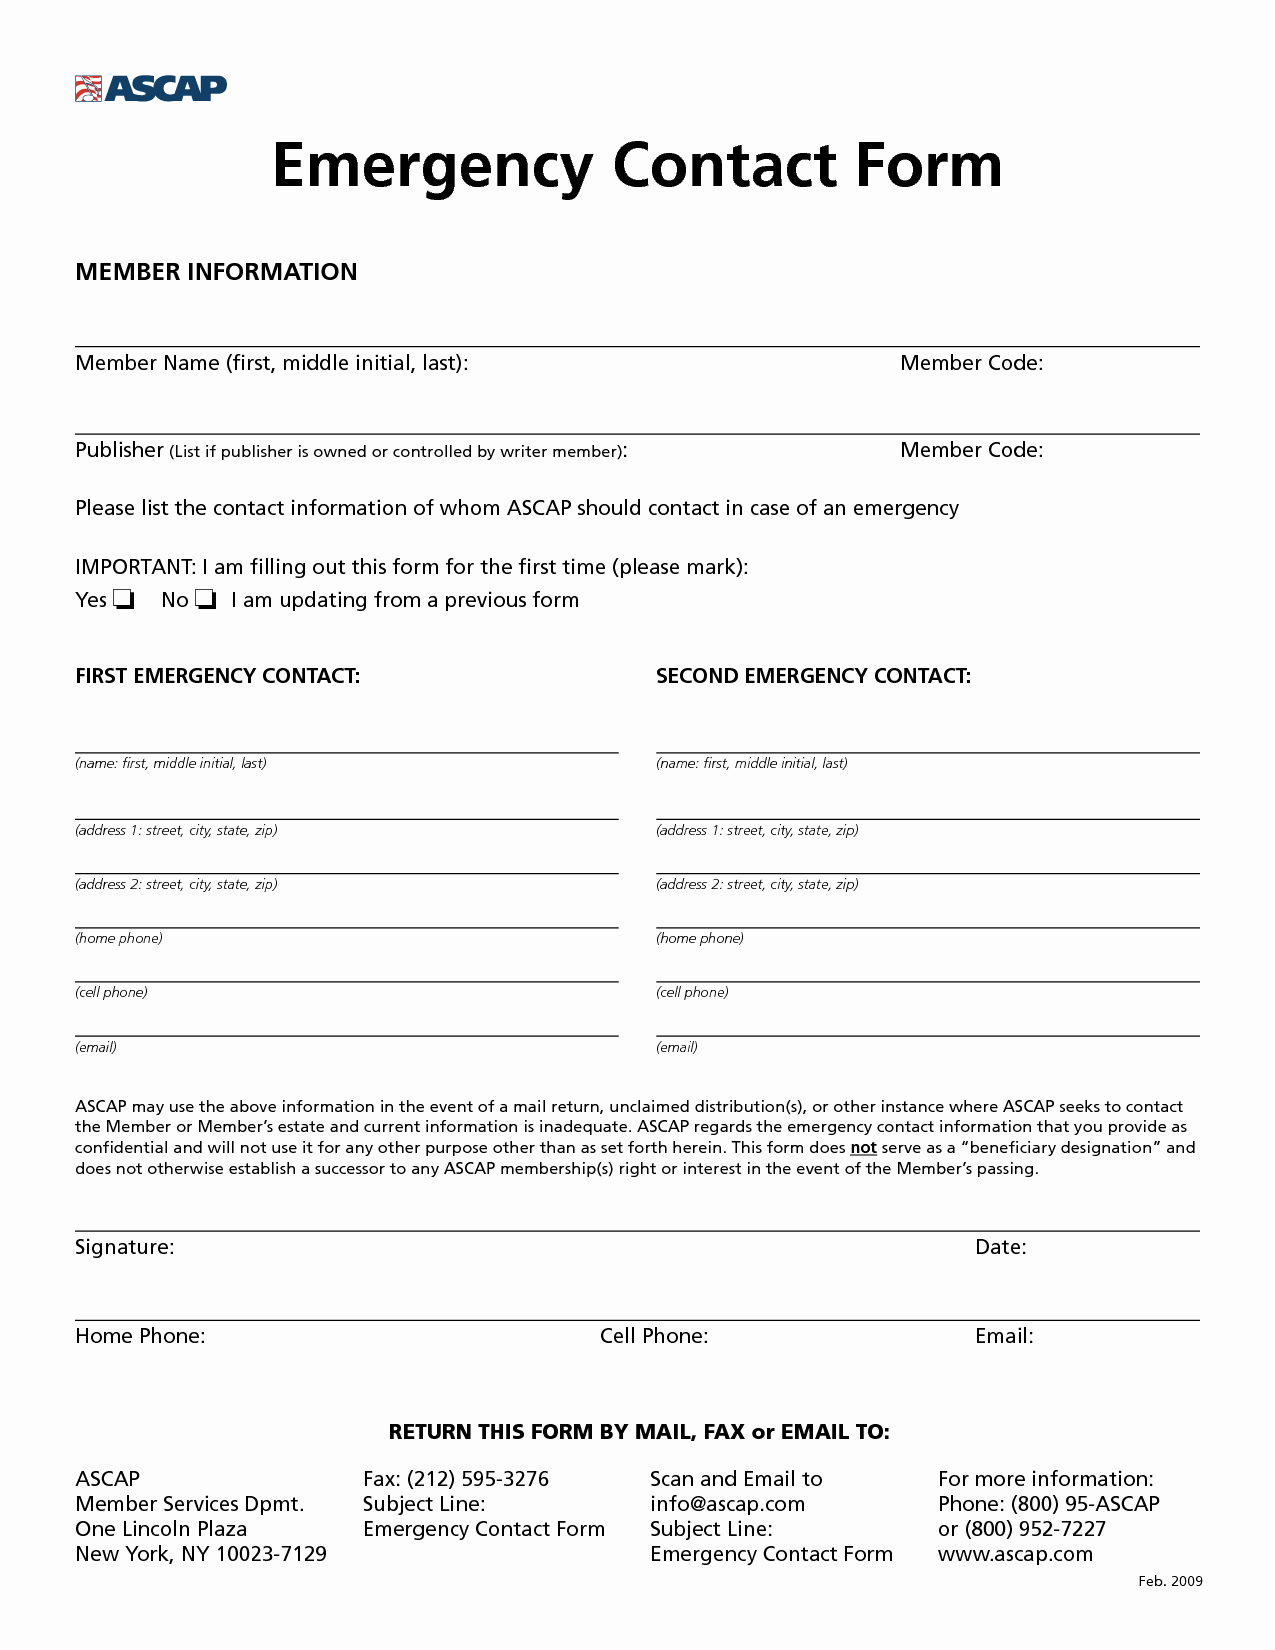 Emergency Contact form Template Lovely 8 Best Of Free Printable Emergency Contact form